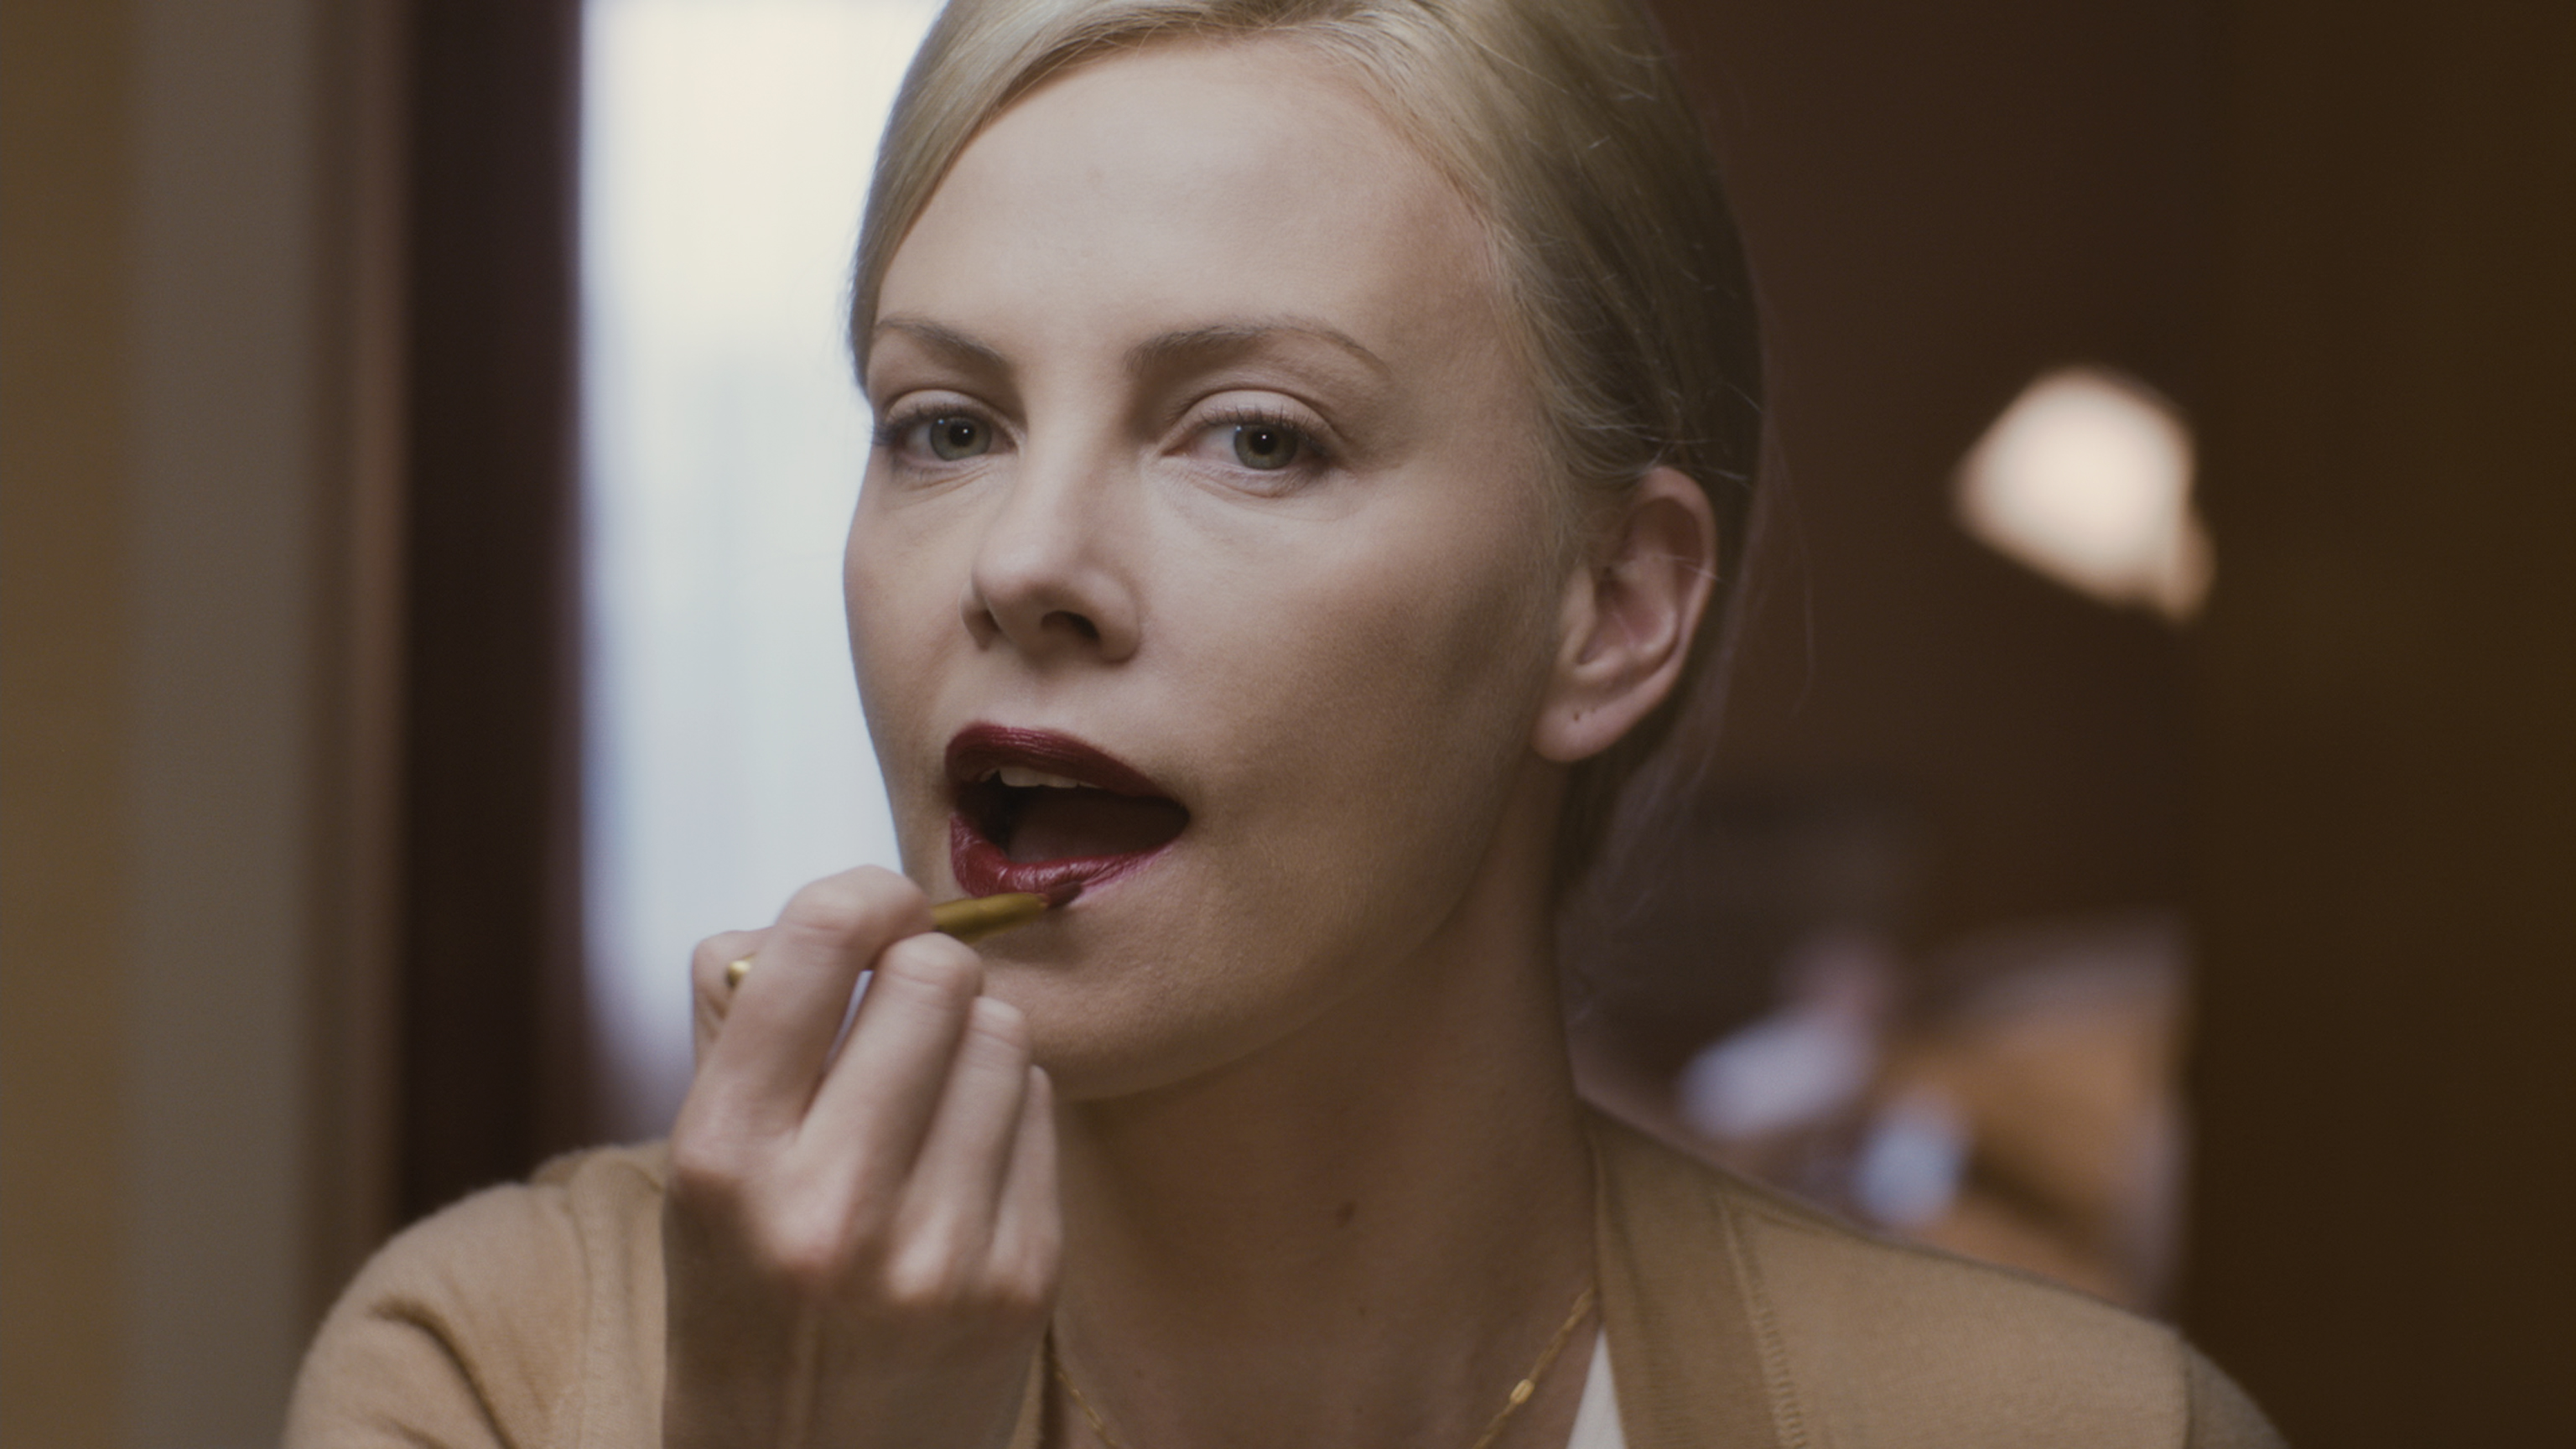 YOUNG ADULT Movie Images Starring Charlize Theron